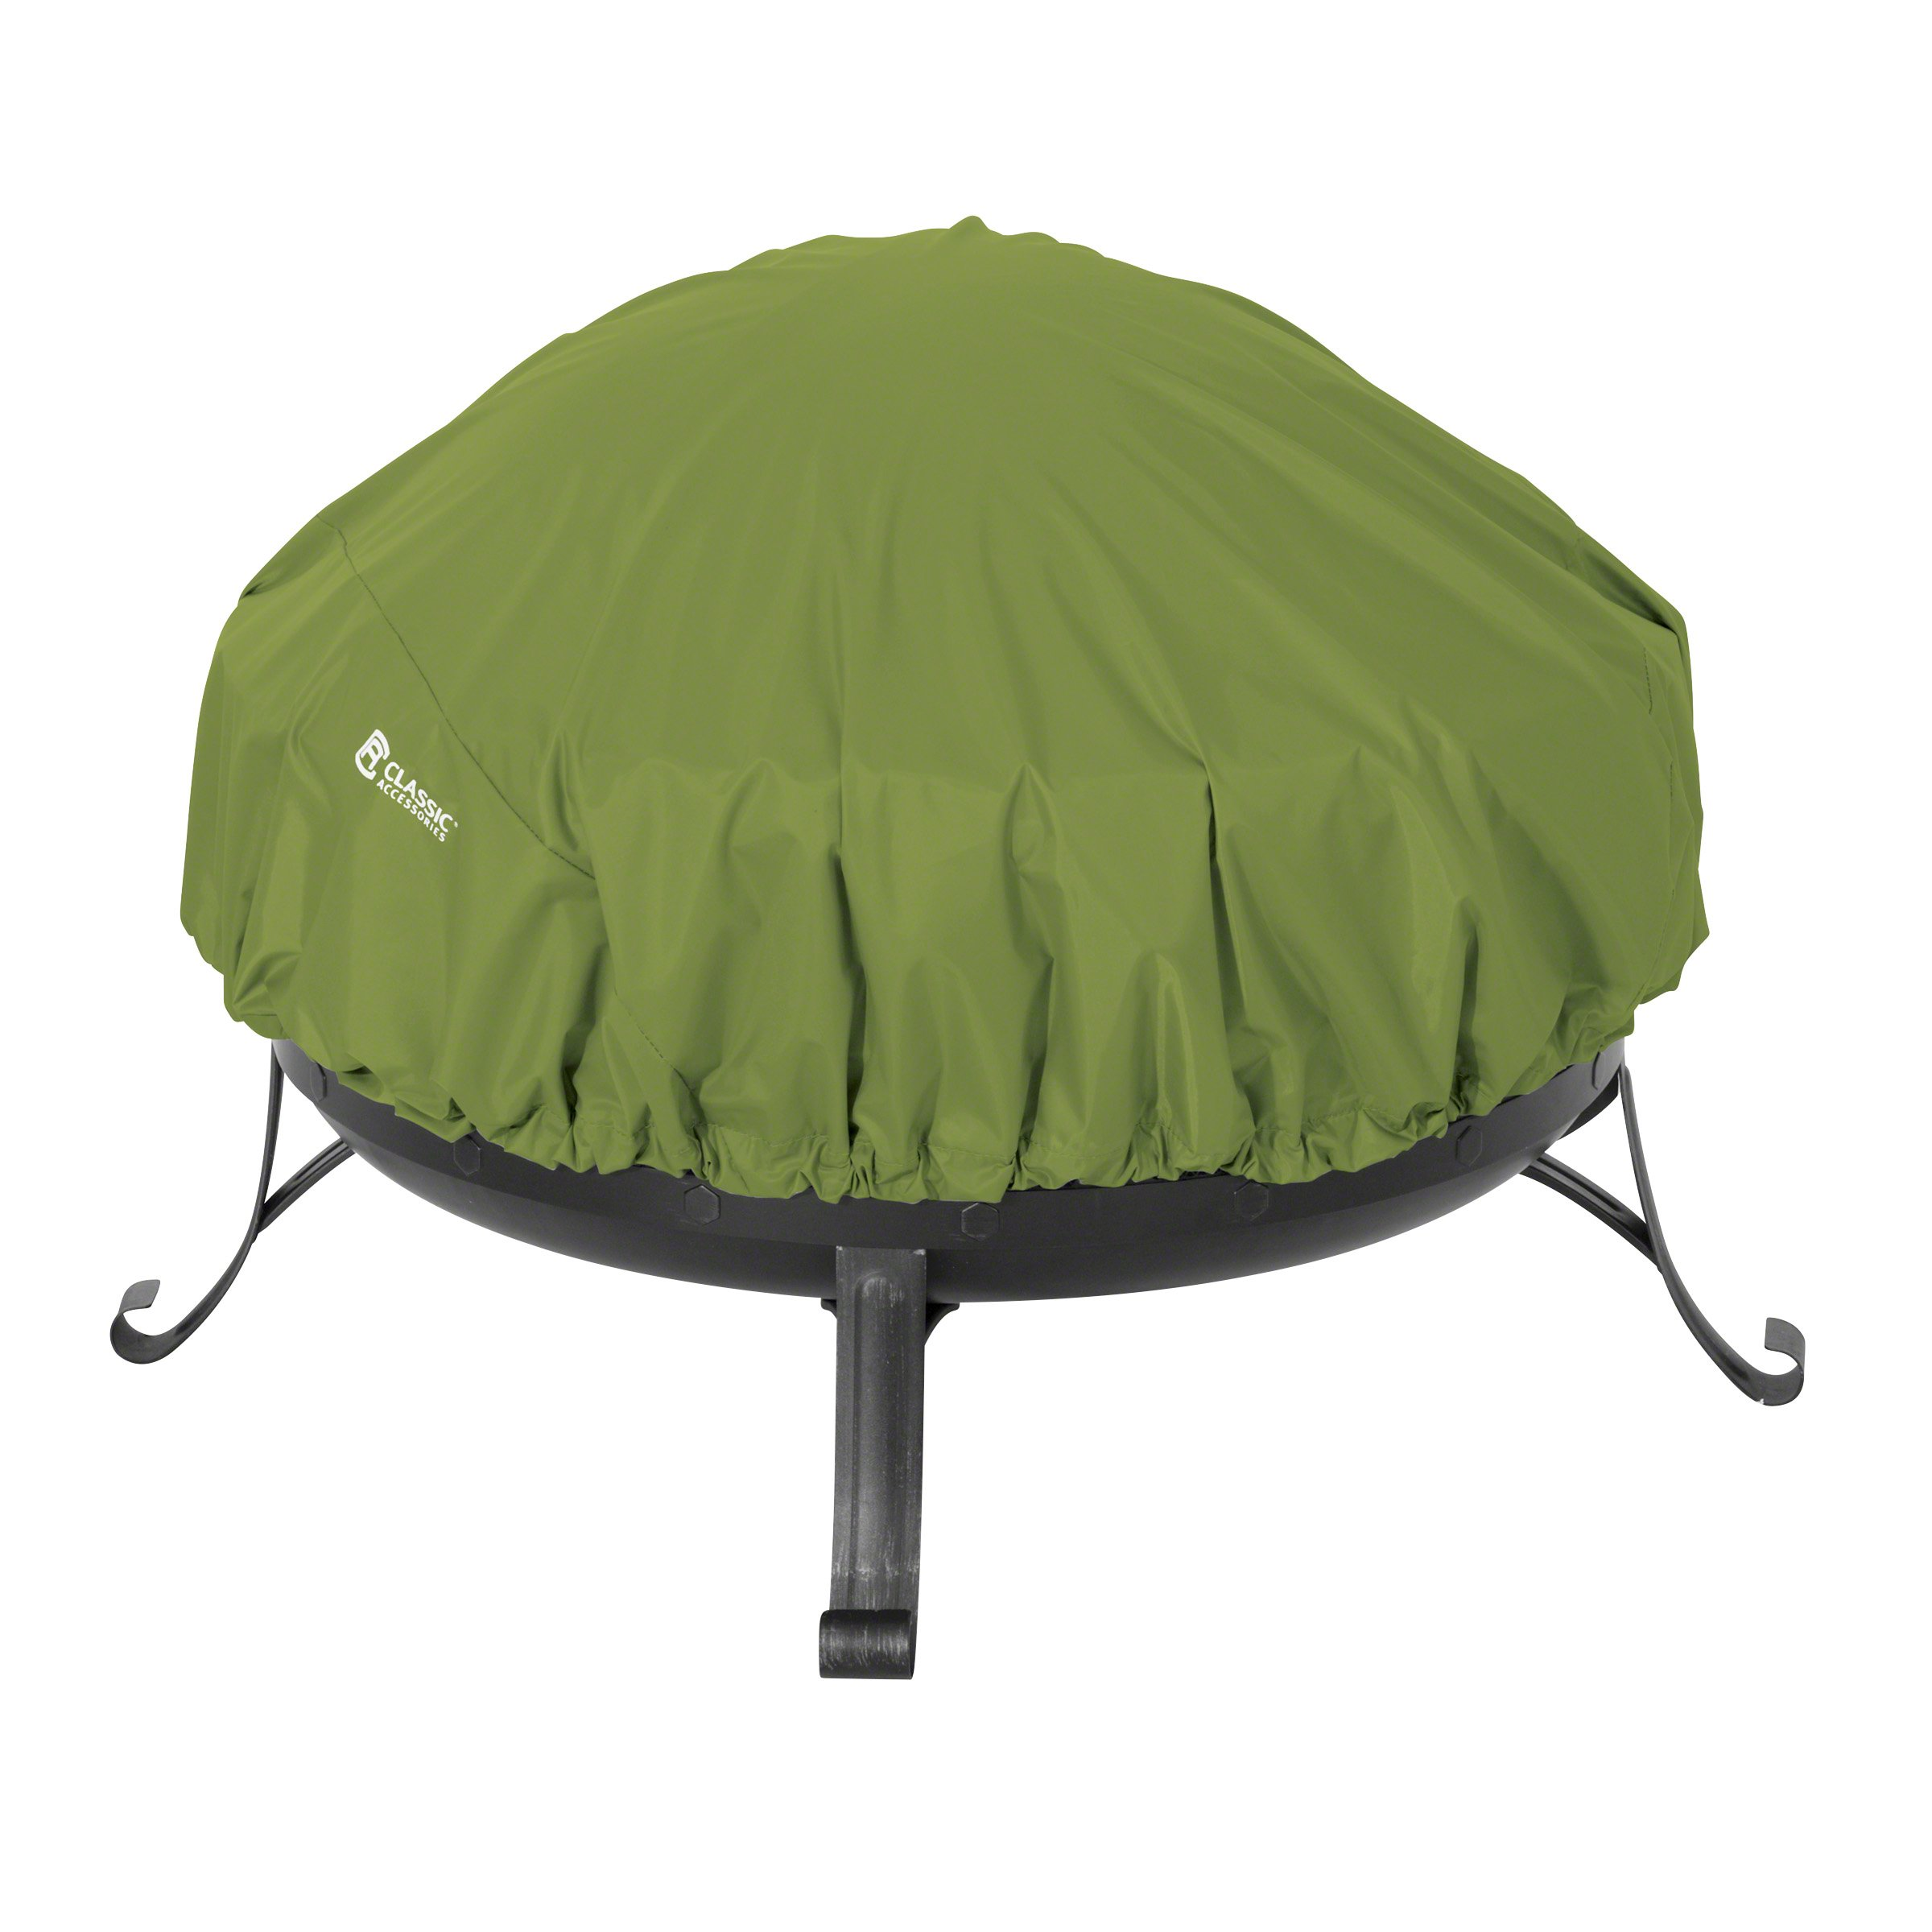 Classic Accessories 55-956-011901-EC Sodo Plus Fire Pit Cover, Green